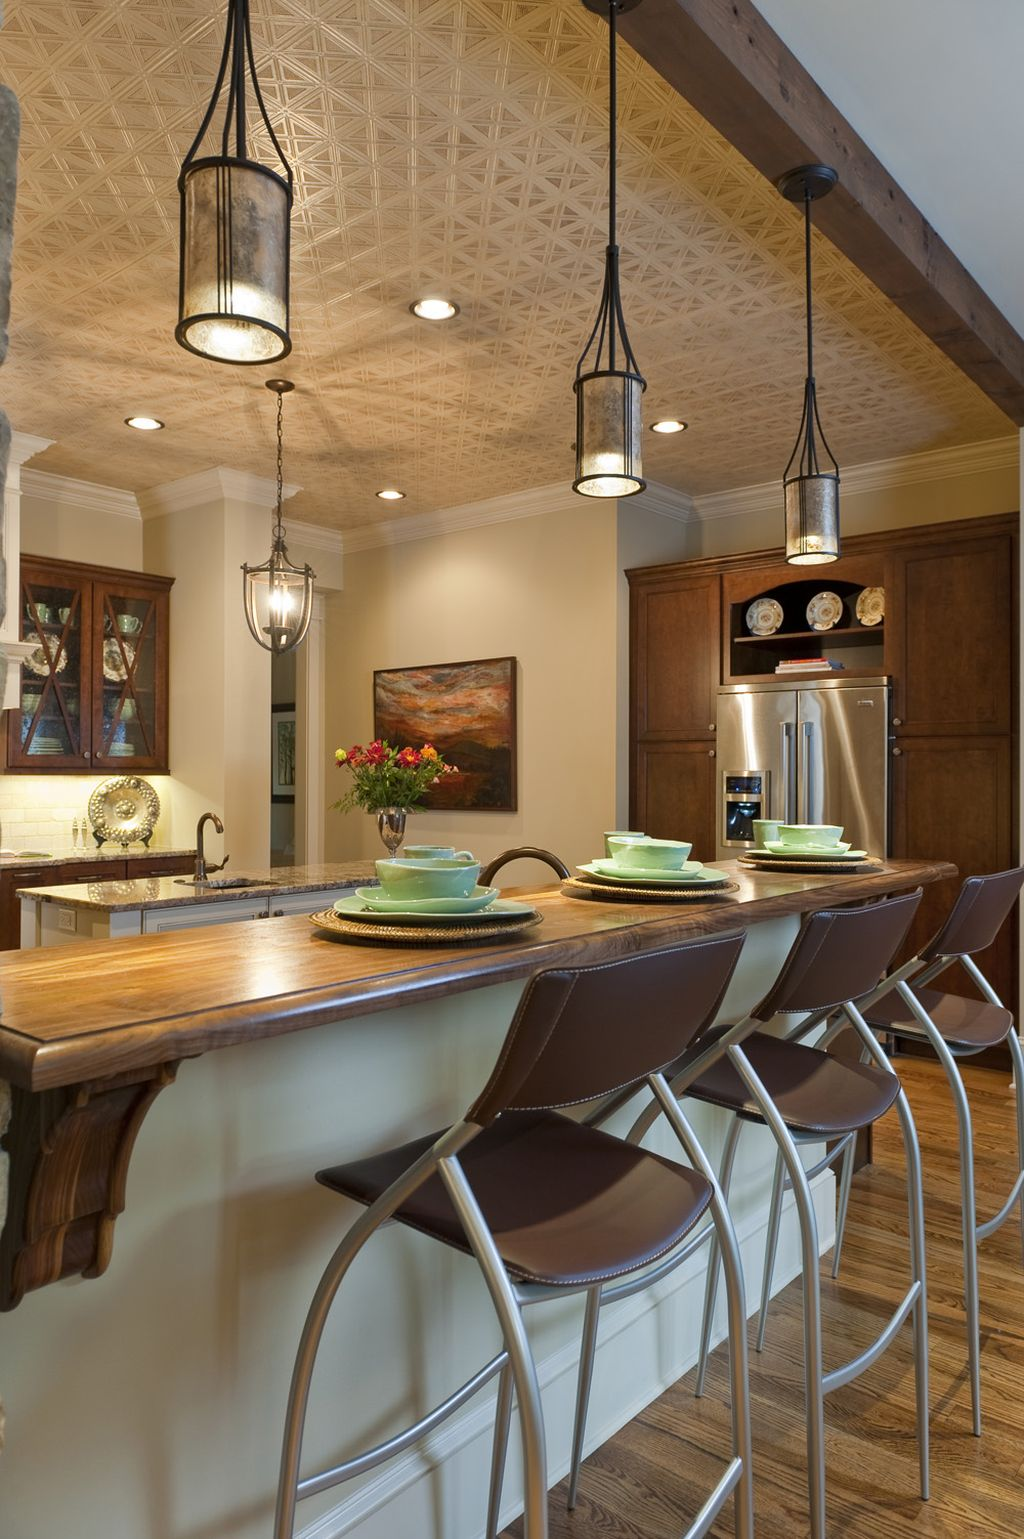 Vintage case mini pendant lights over kitchen island kitchen ...